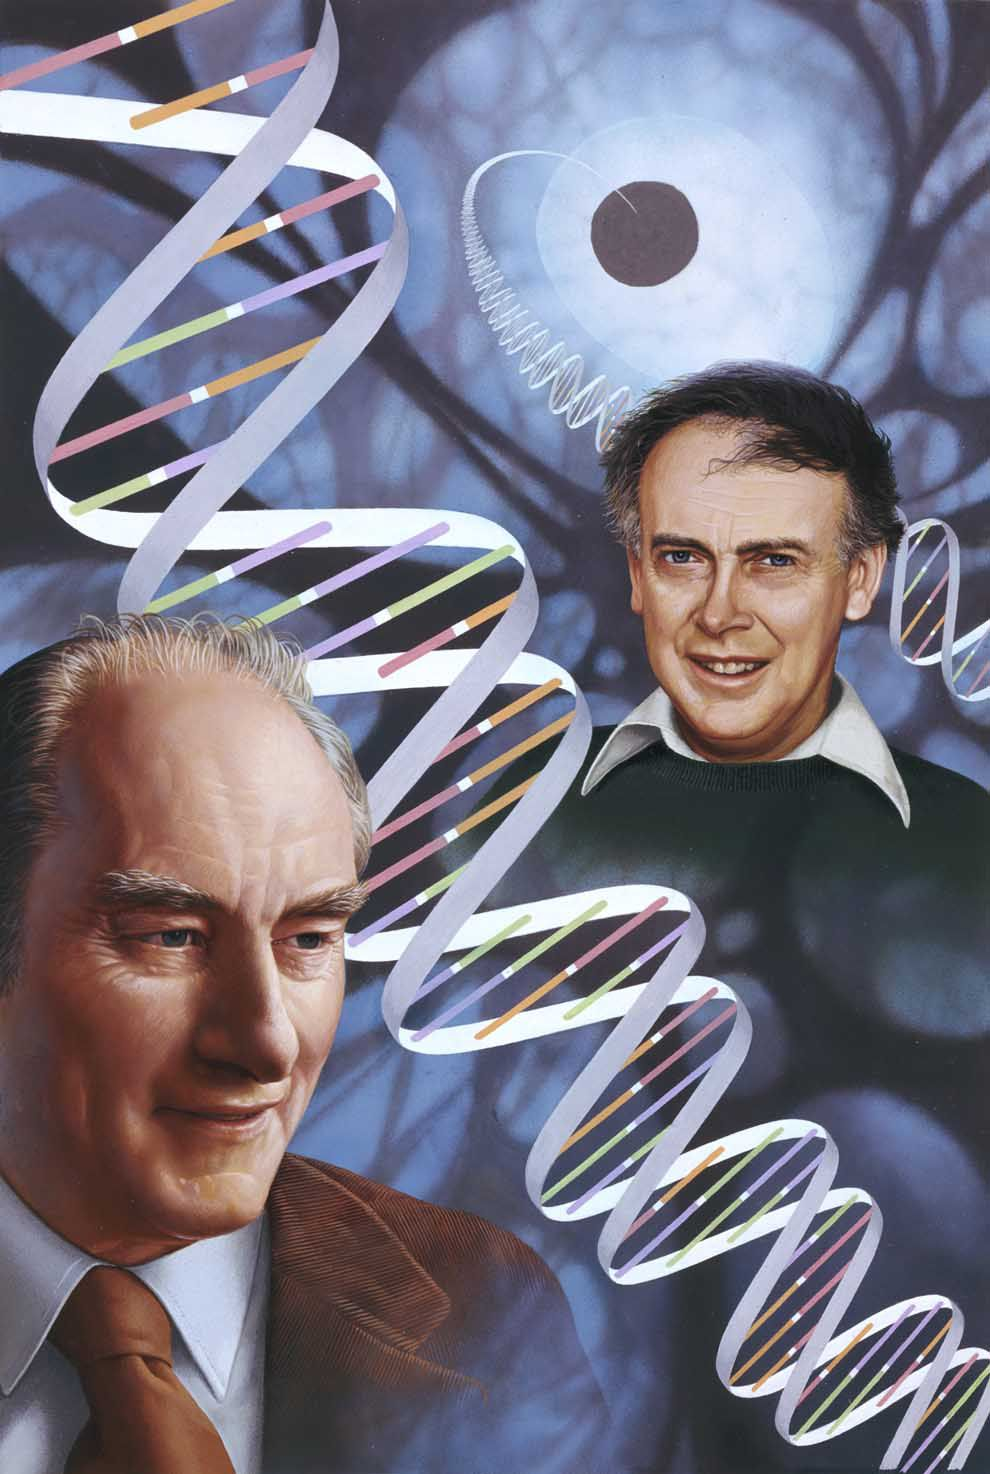 watson and crick 1-16 of 193 results for crick and watson did you mean: crock and watson the double helix: a personal account of the discovery of the structure of dna jun 12, 2001.